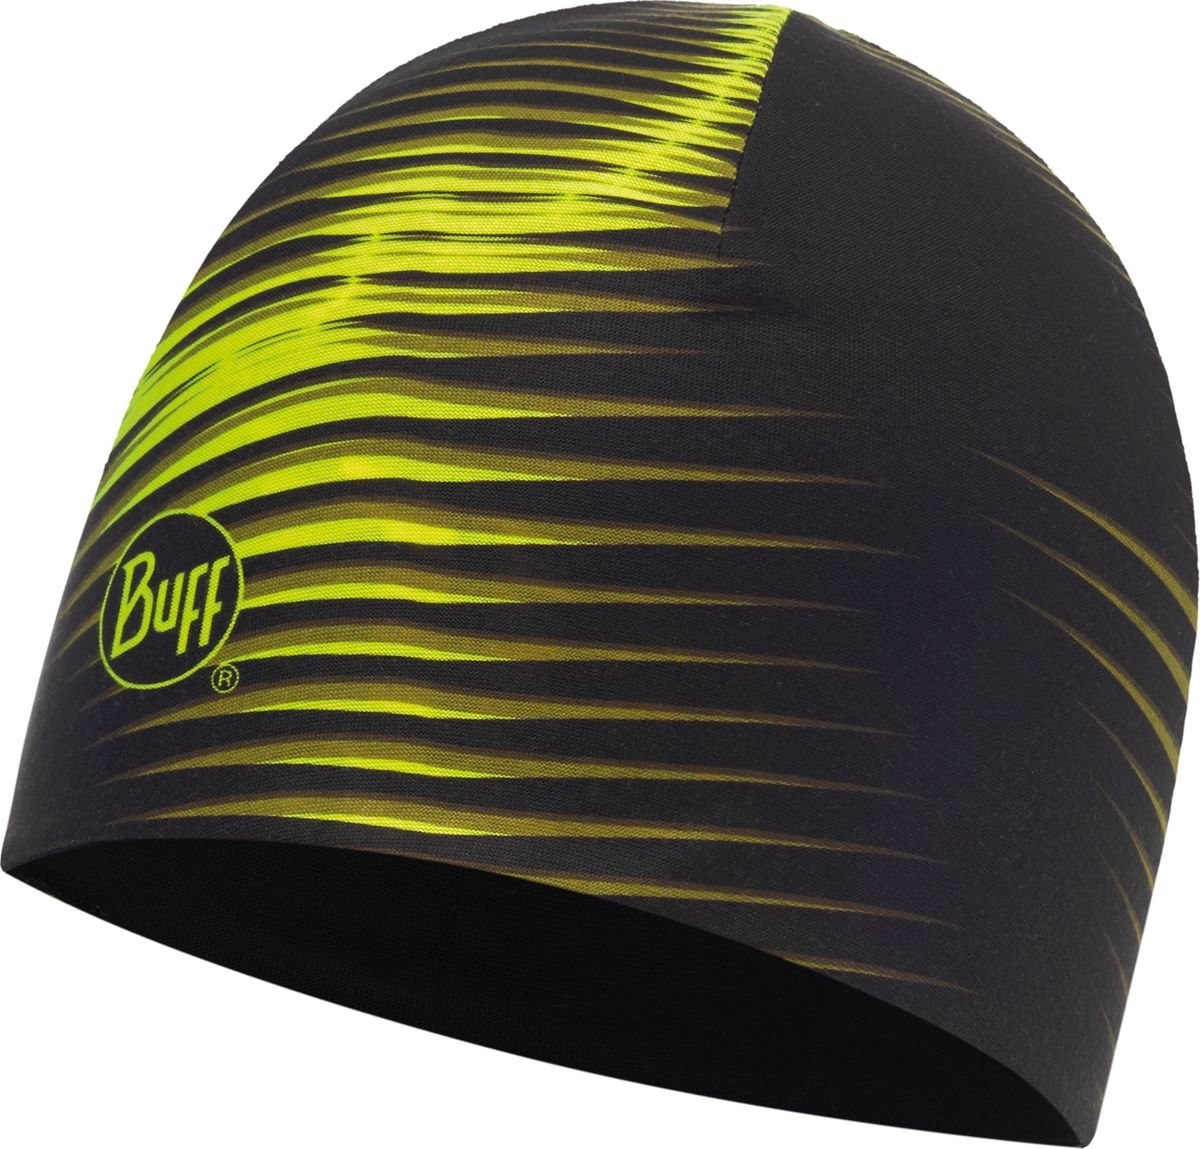 Шапка Buff Microfiber Reversible Hat optical yellow fluor 3 Microfiber Reversible Hat BU 117102.117.10.00